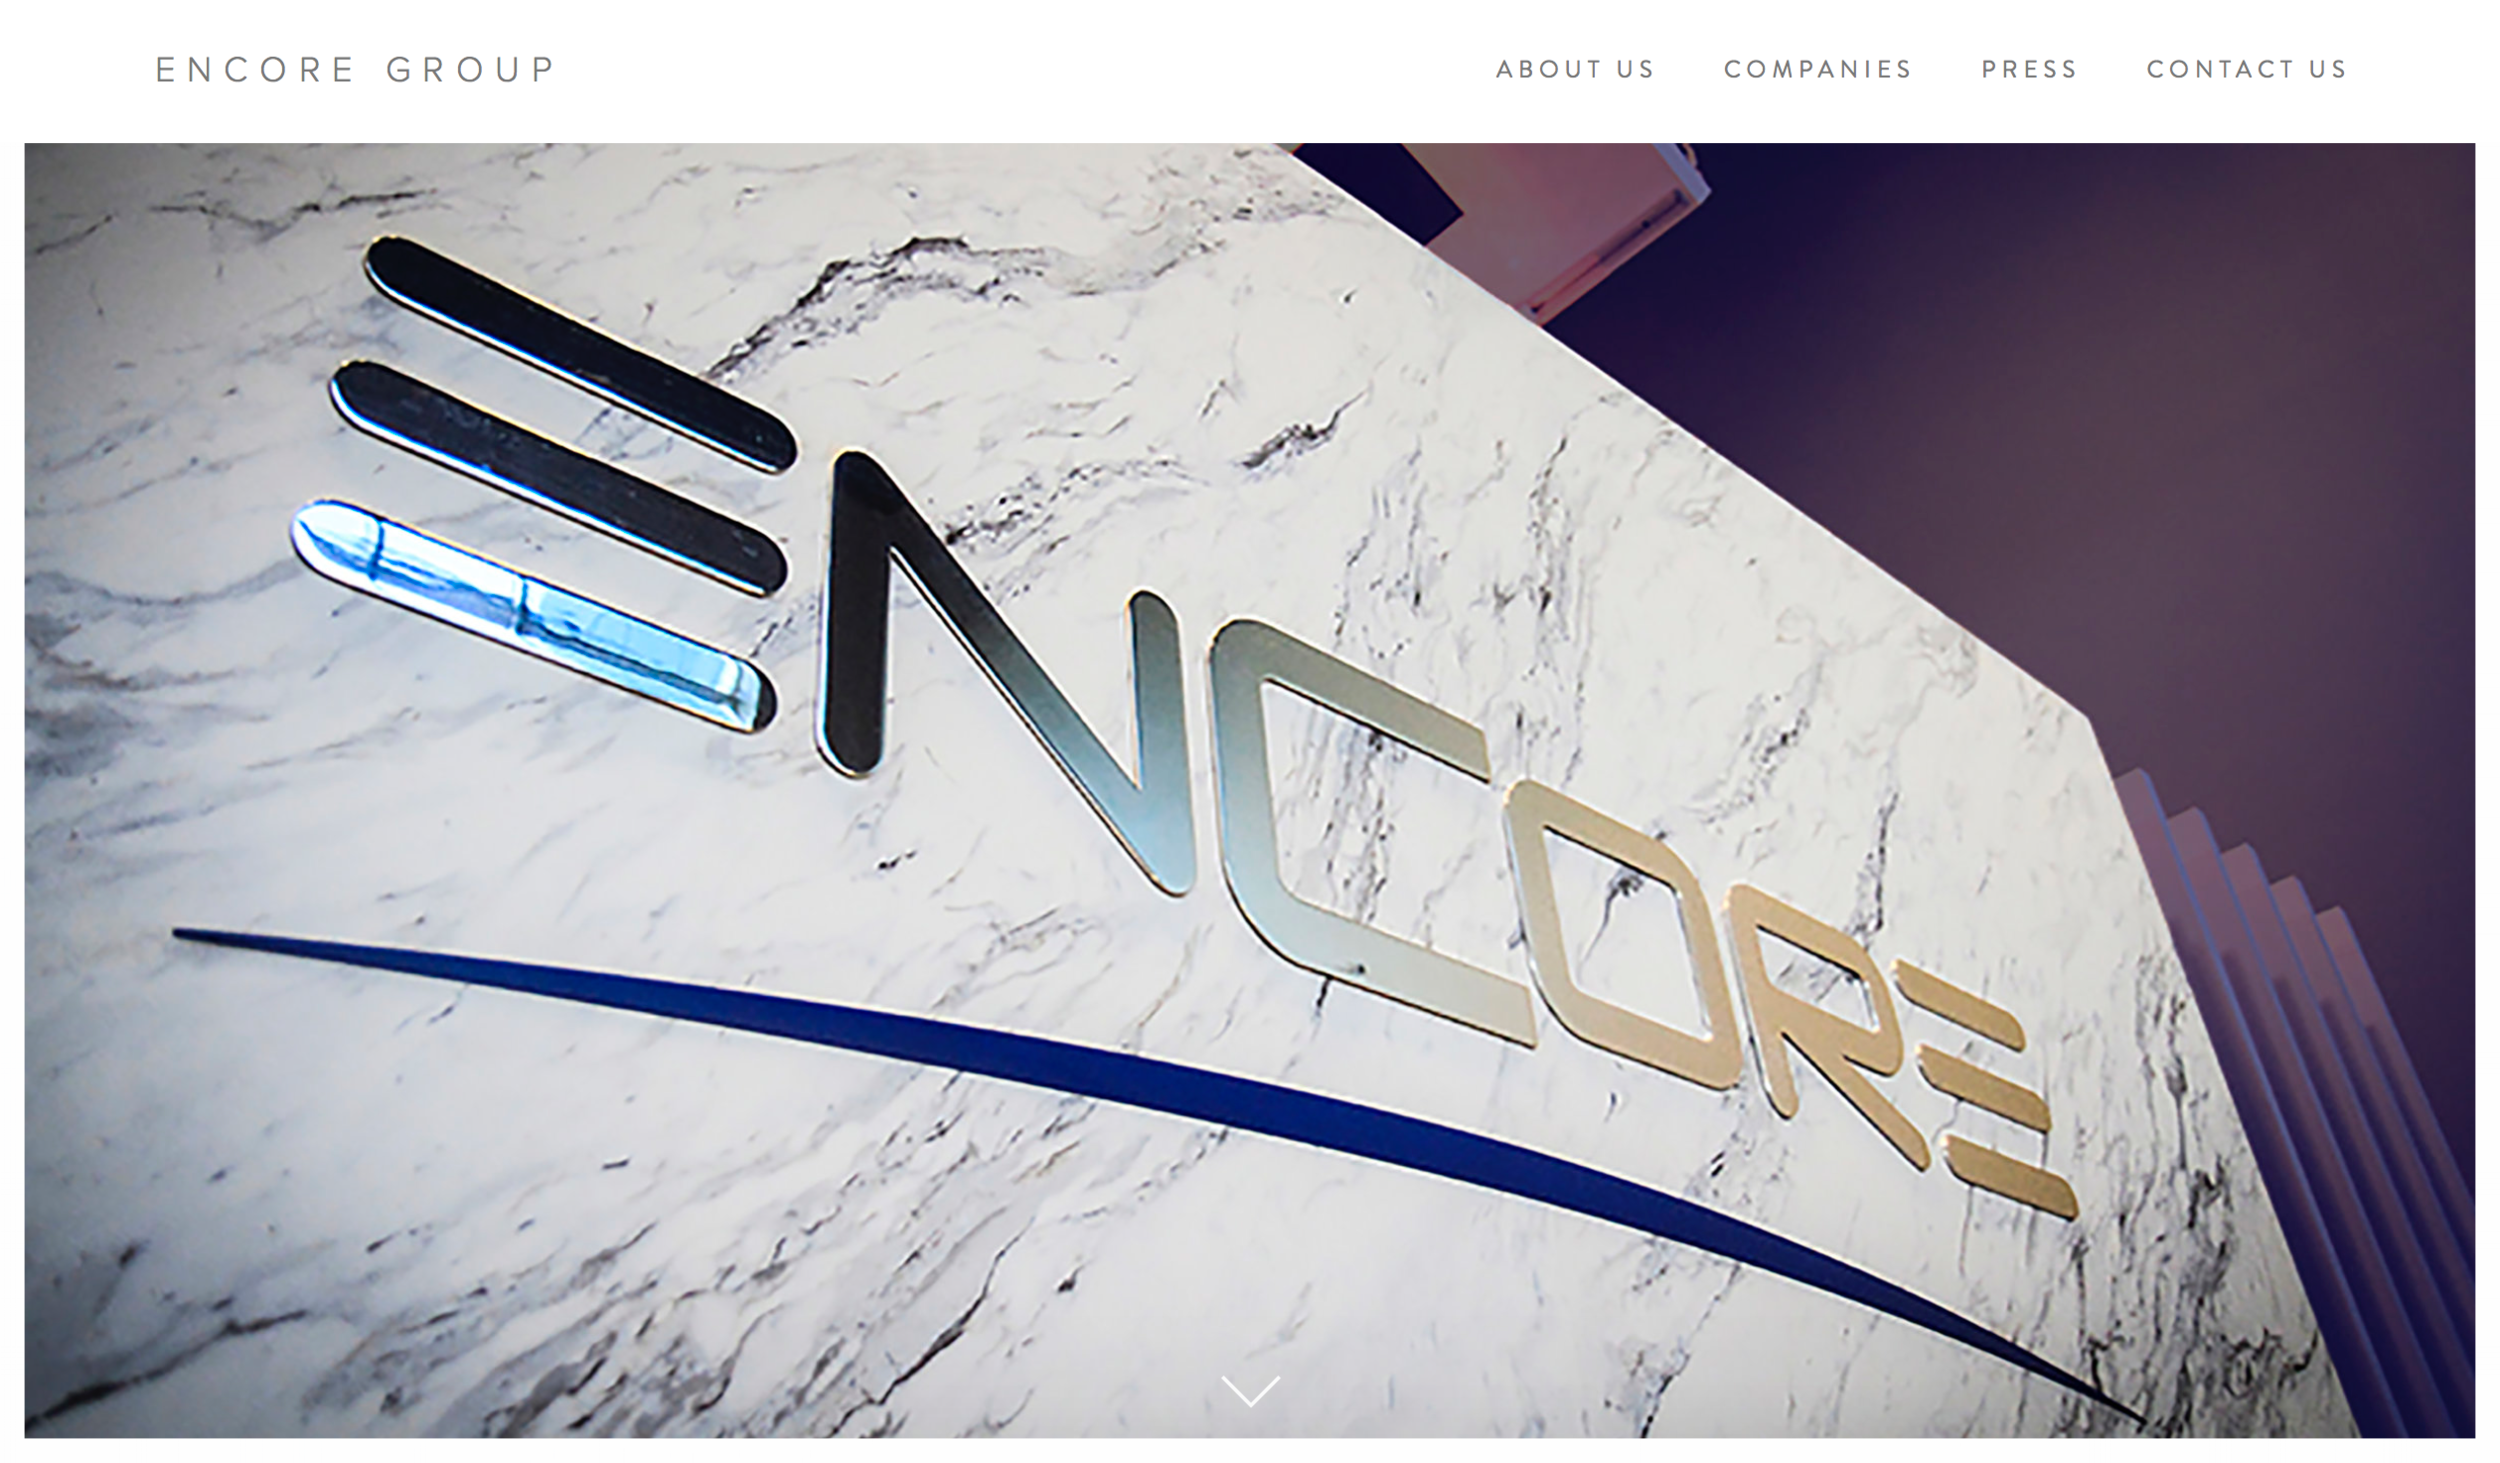 The EnCore Group - New Website